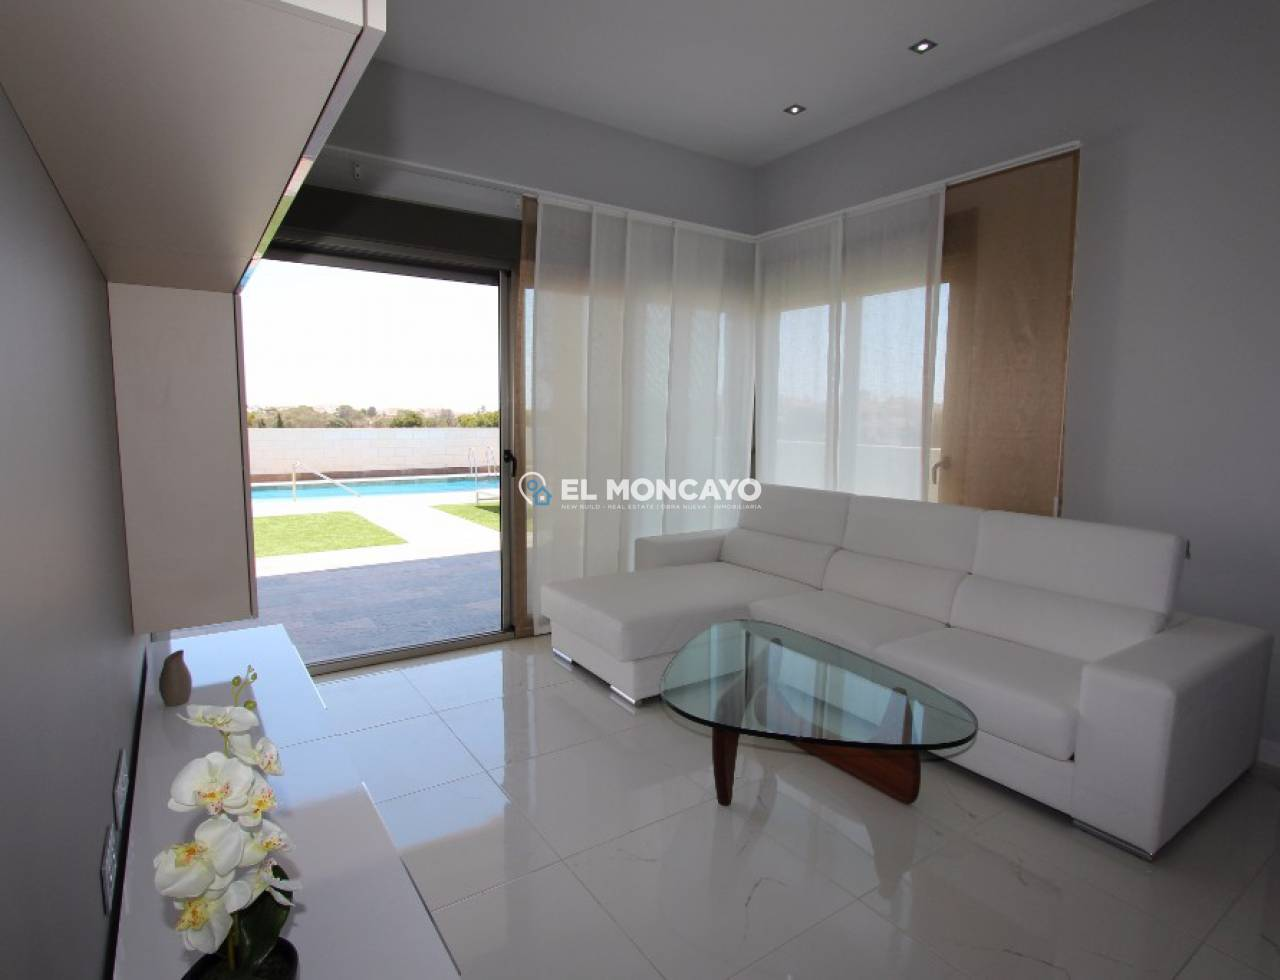 New build villa in Villamartin - Orihuela Costa - Costa Blanca south 142 (10)